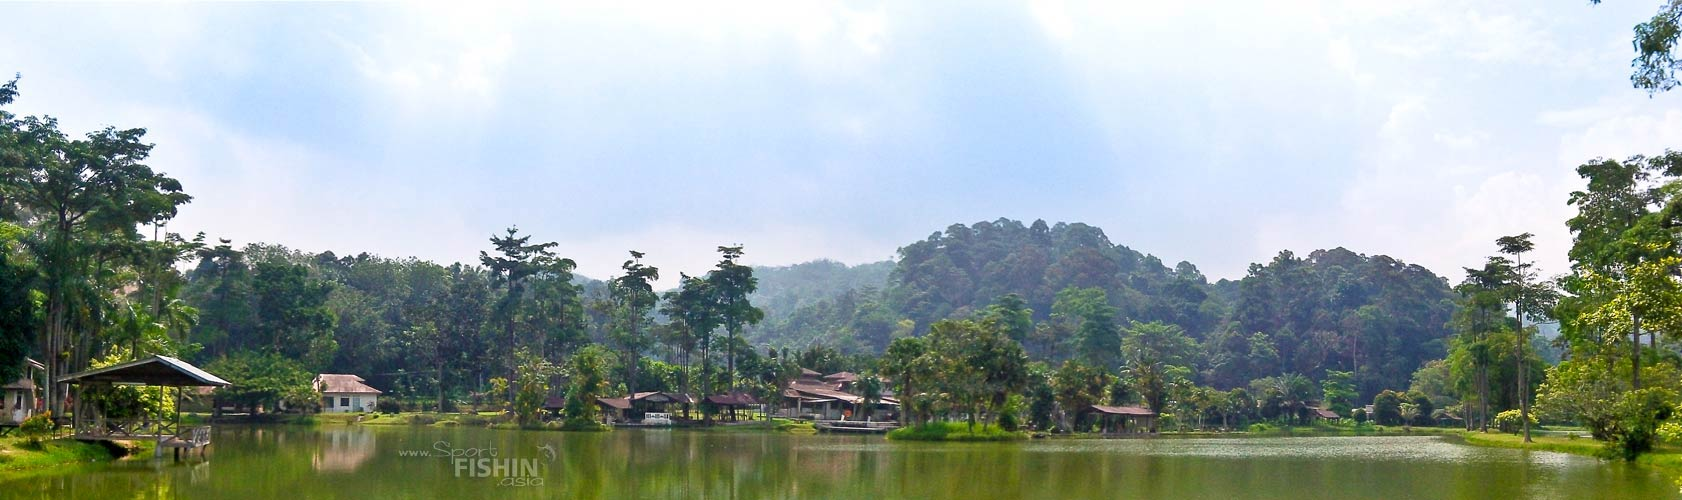 sukida-resort-pond-panorama